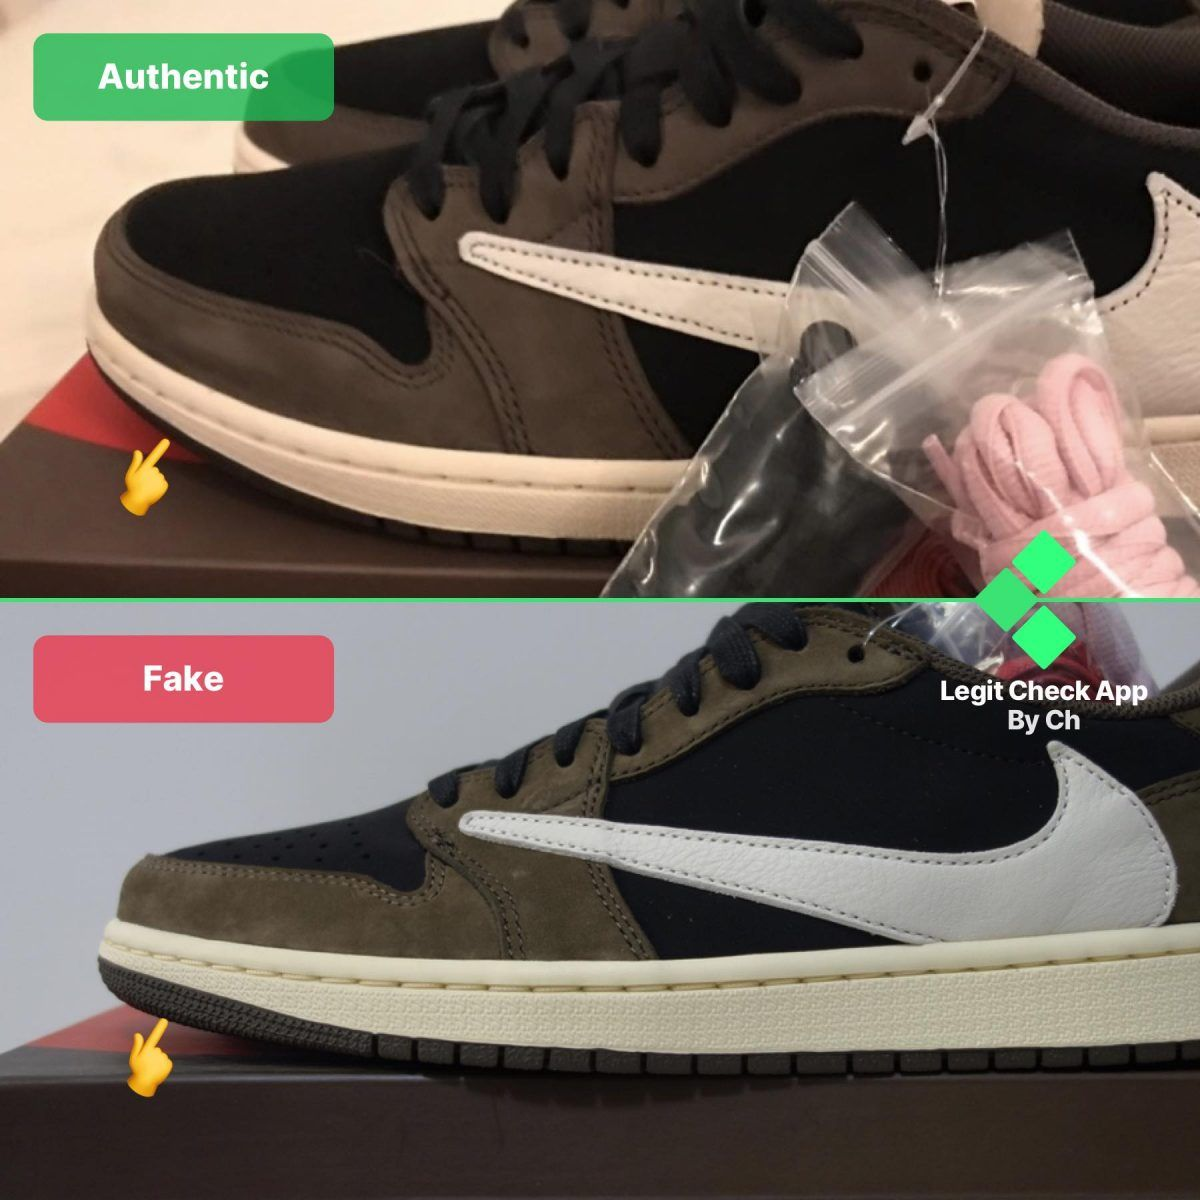 REAL VS FAKE TRAVIS SCOTT LOW TOP (With images) Travis